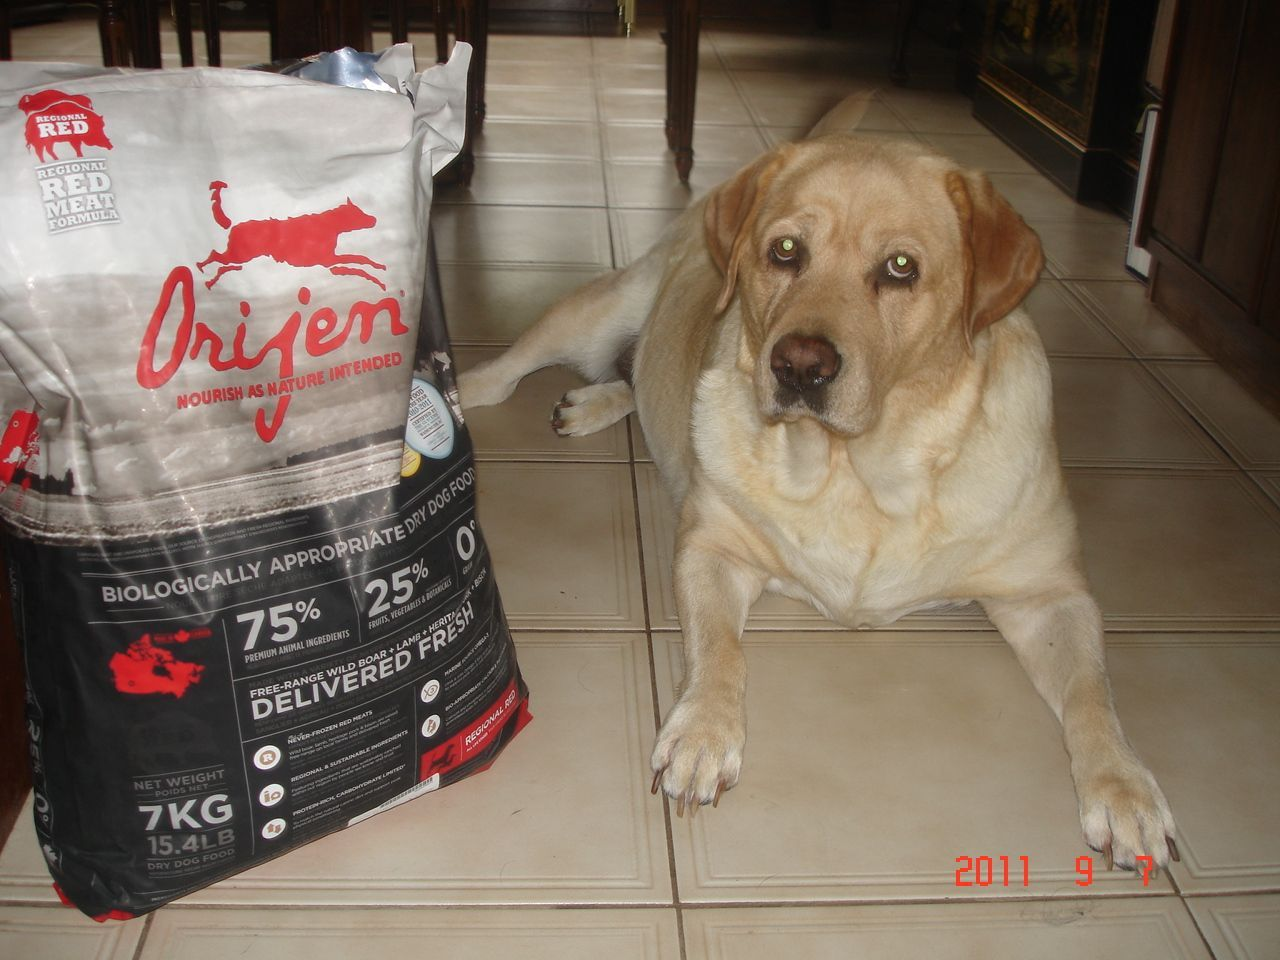 Top Best And Worst Dog Food Comparison Chart Shows The Progression